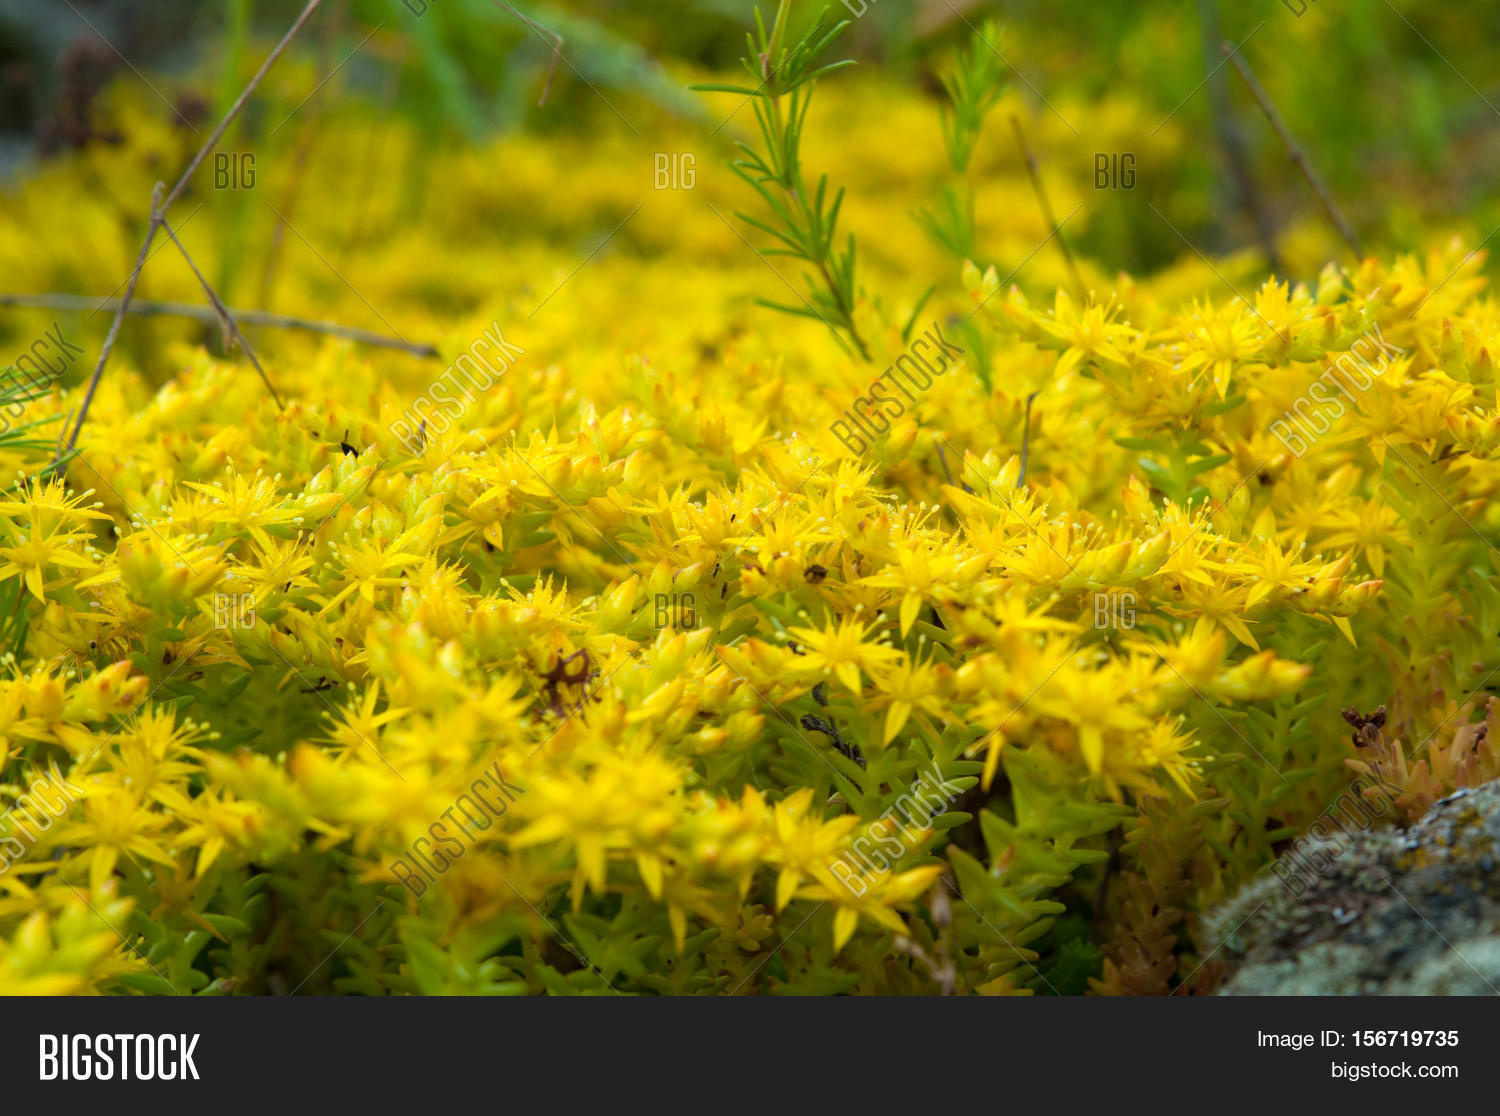 Yellow flowering moss sedum image photo bigstock yellow flowering moss sedum sexangulare plants mats ornamental flowering moss ground cover plants mightylinksfo Images